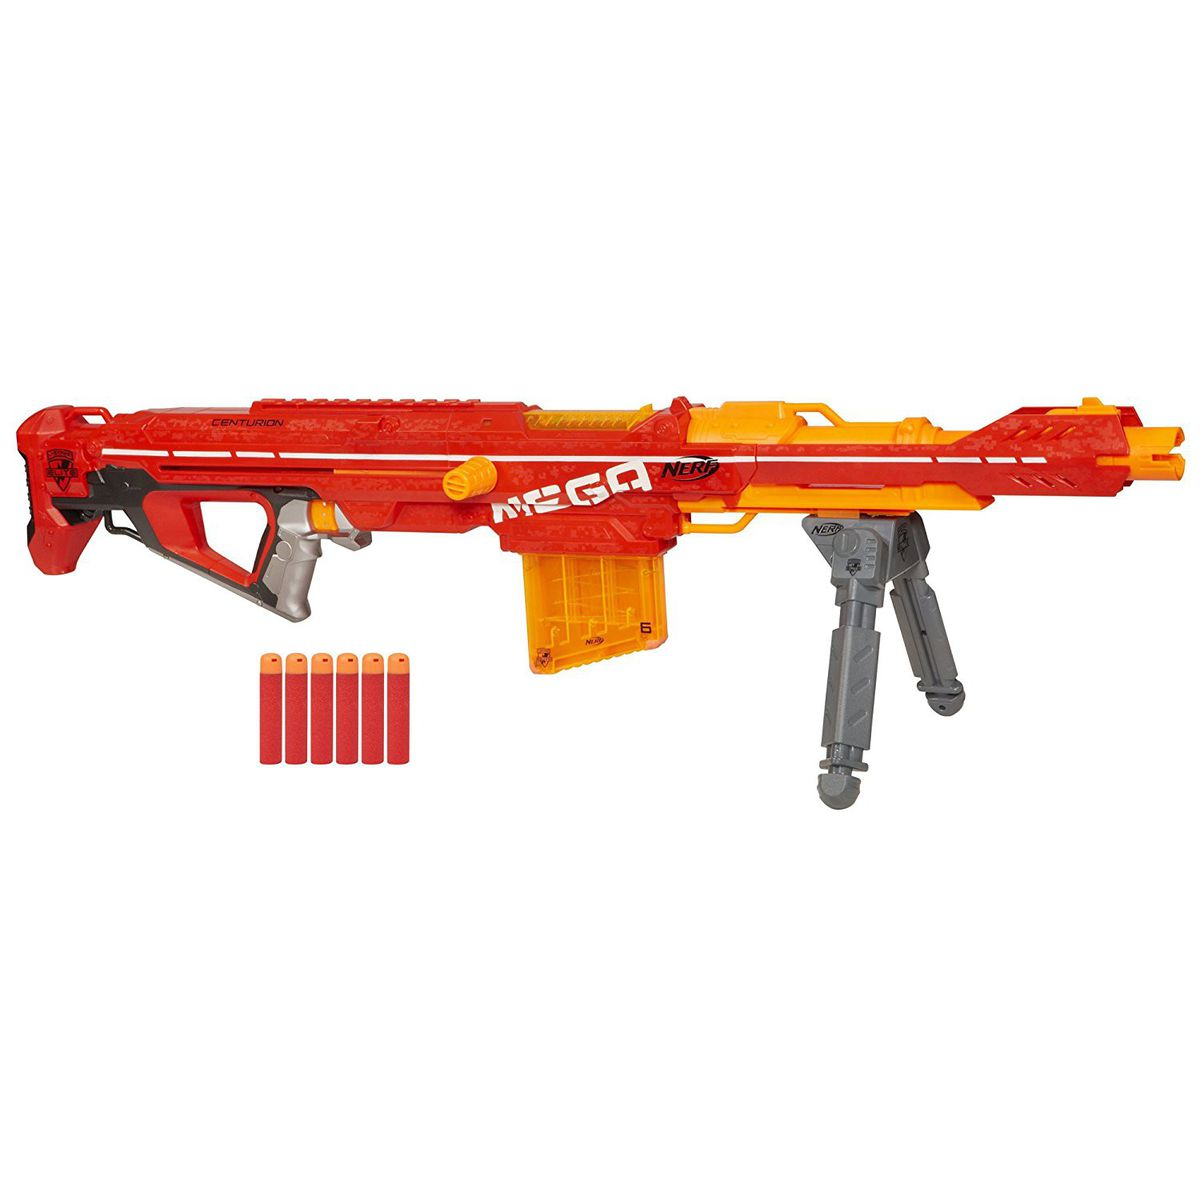 NERF ACCUSTRIKE MEGA THUNDERHAWK Blaster. (Ages 8 years & up/Approx. Retail  Price: $49.99/Available: Fall 2018)